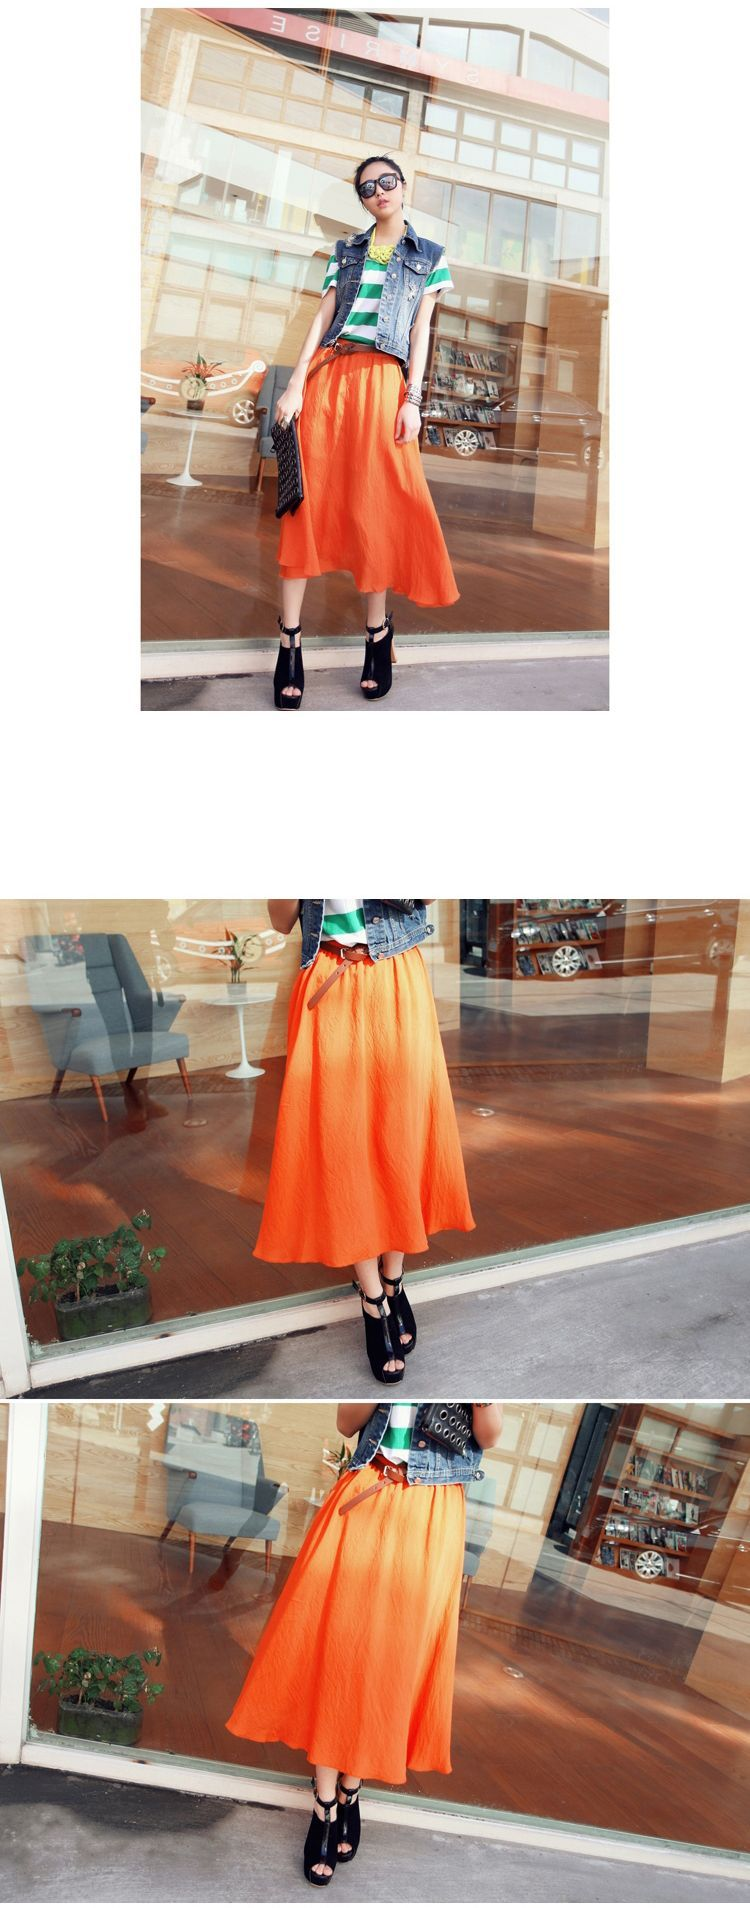 DRESS KOREA - ROK CHIFFON KOREA